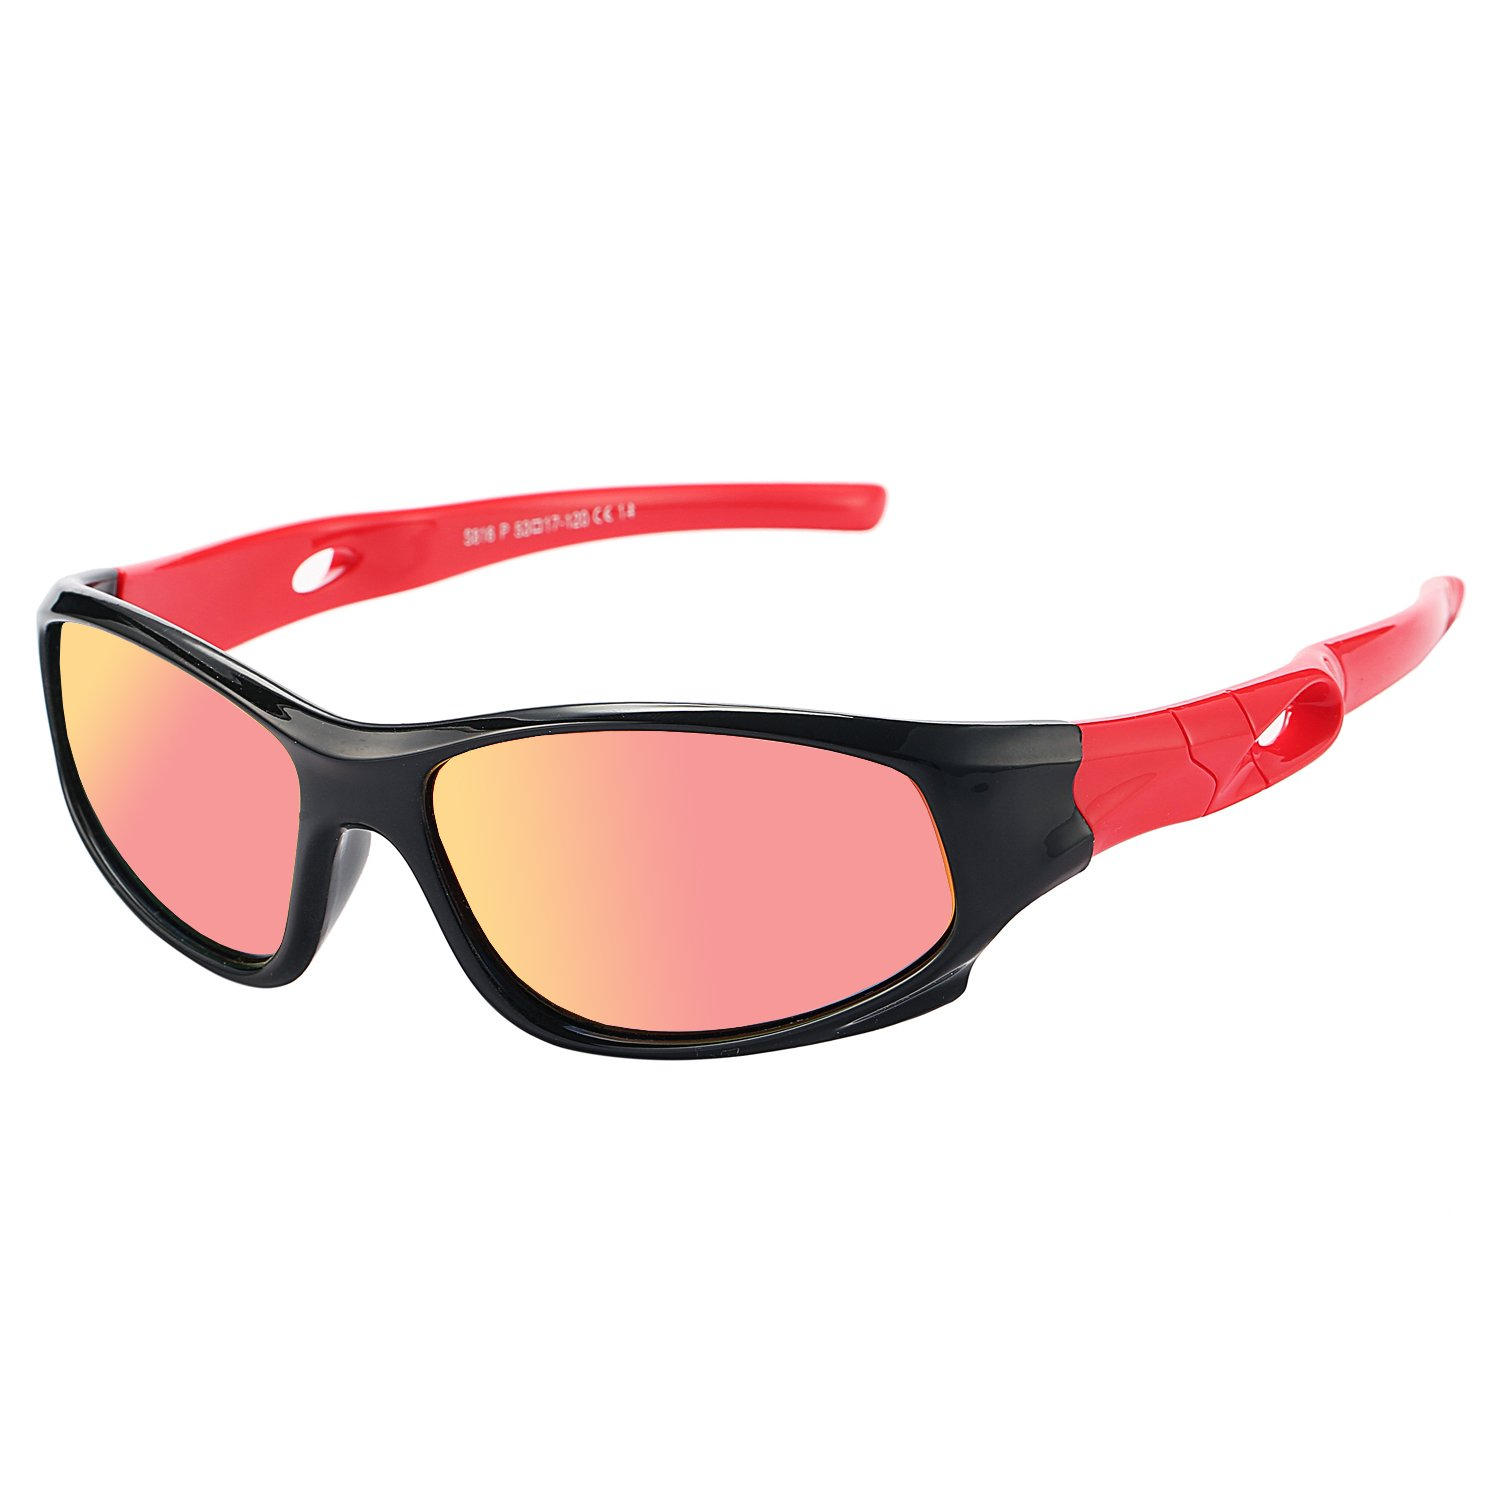 Pro Acme TR90 Unbreakable Polarized Sports Sunglasses for Kids Boys and Girls (Black/Red Mirror)